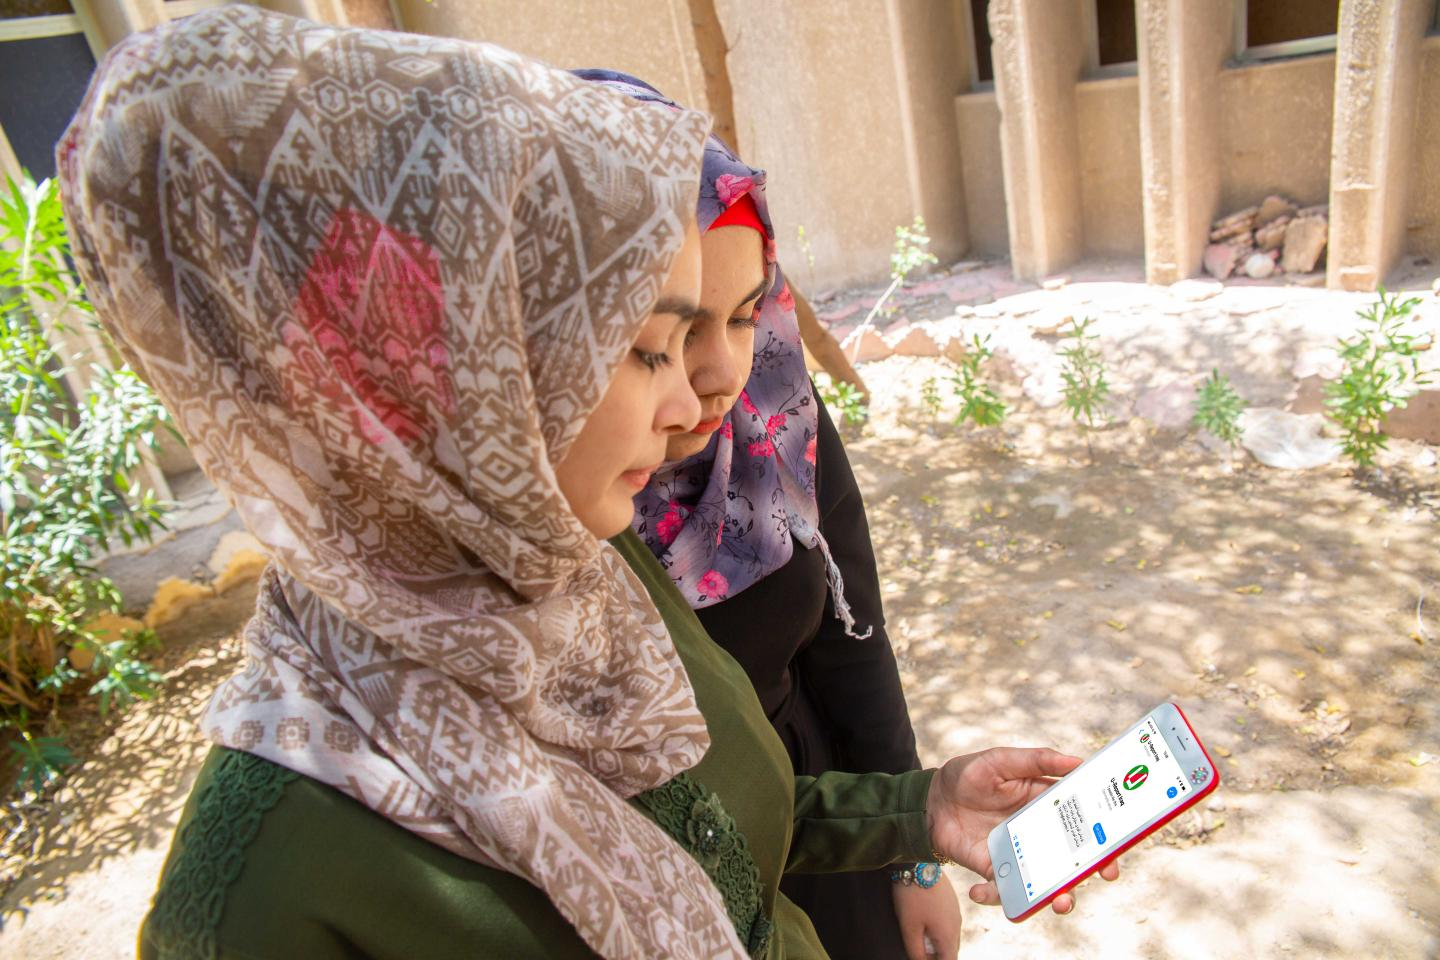 Spread awareness, not fear— UNICEF reaches 14 million people in Iraq through SMS with critical information related to Covid-19